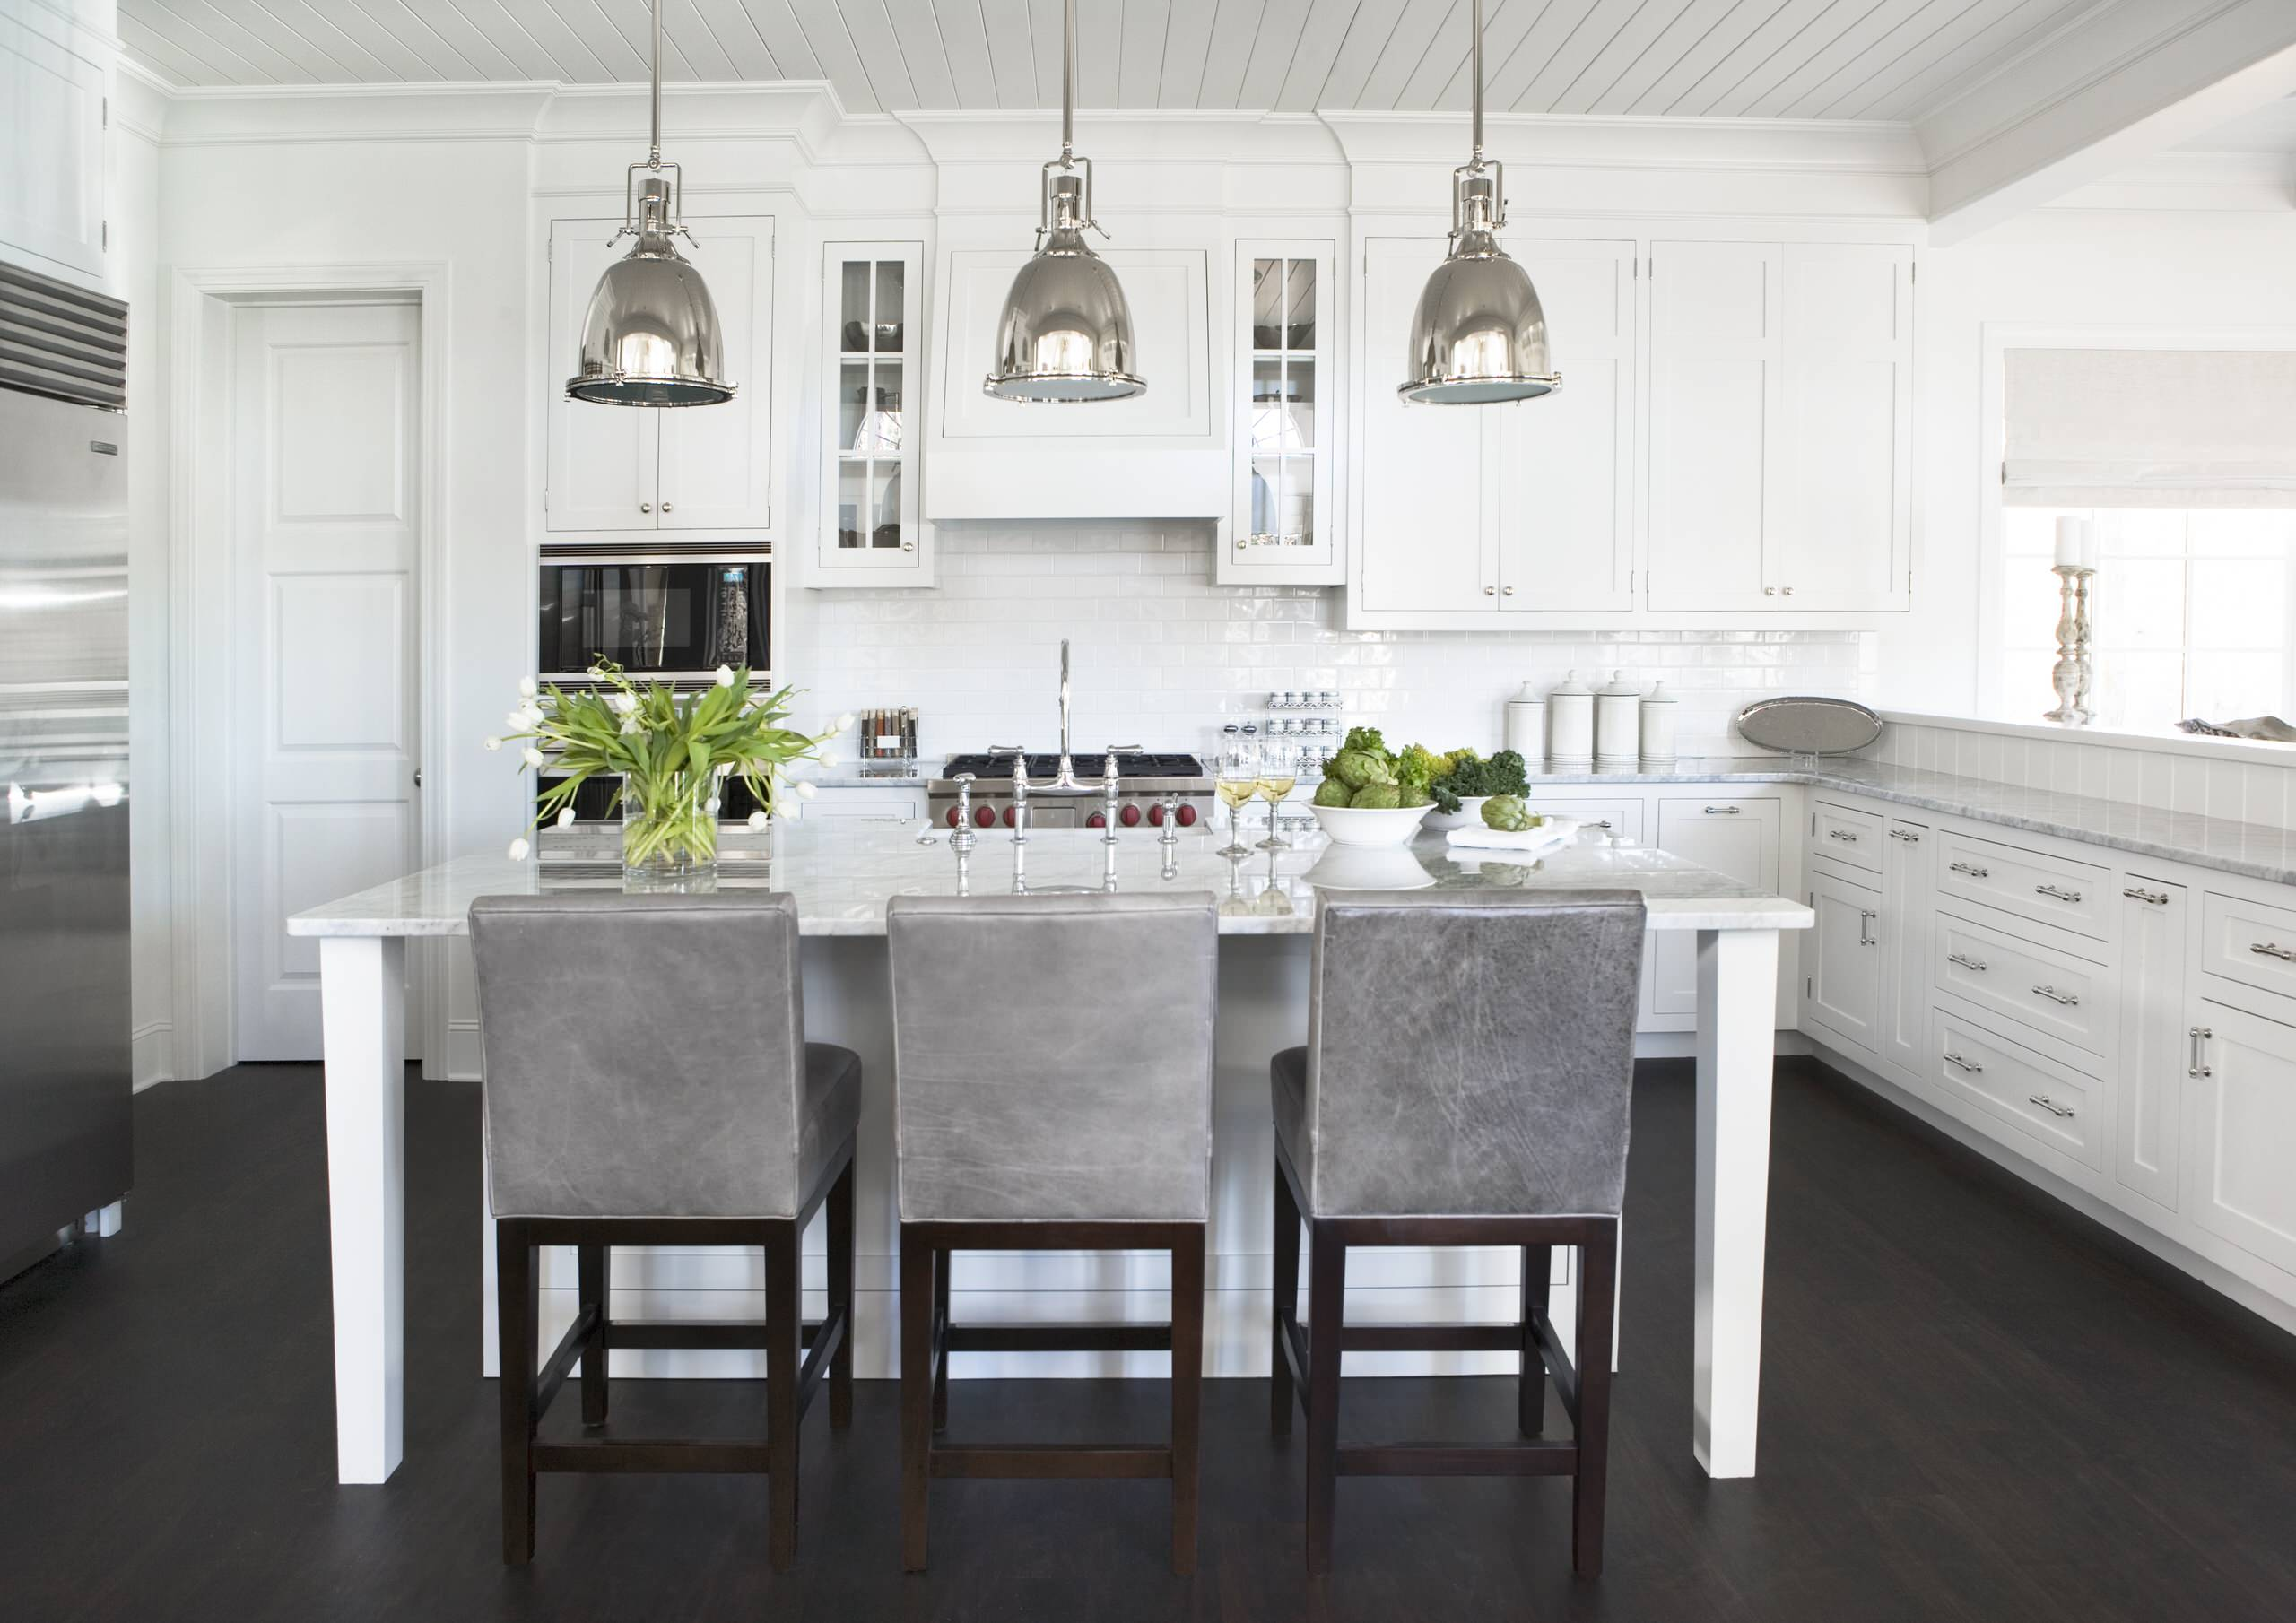 Tongue and groove kitchen cabinets - Cabinets In Contemporary Kitchen Plus Counter Stools With Dark Wood Flooring And Tongue And Groove Ceiling Plus Industrial Pendant Lighting Also Glass